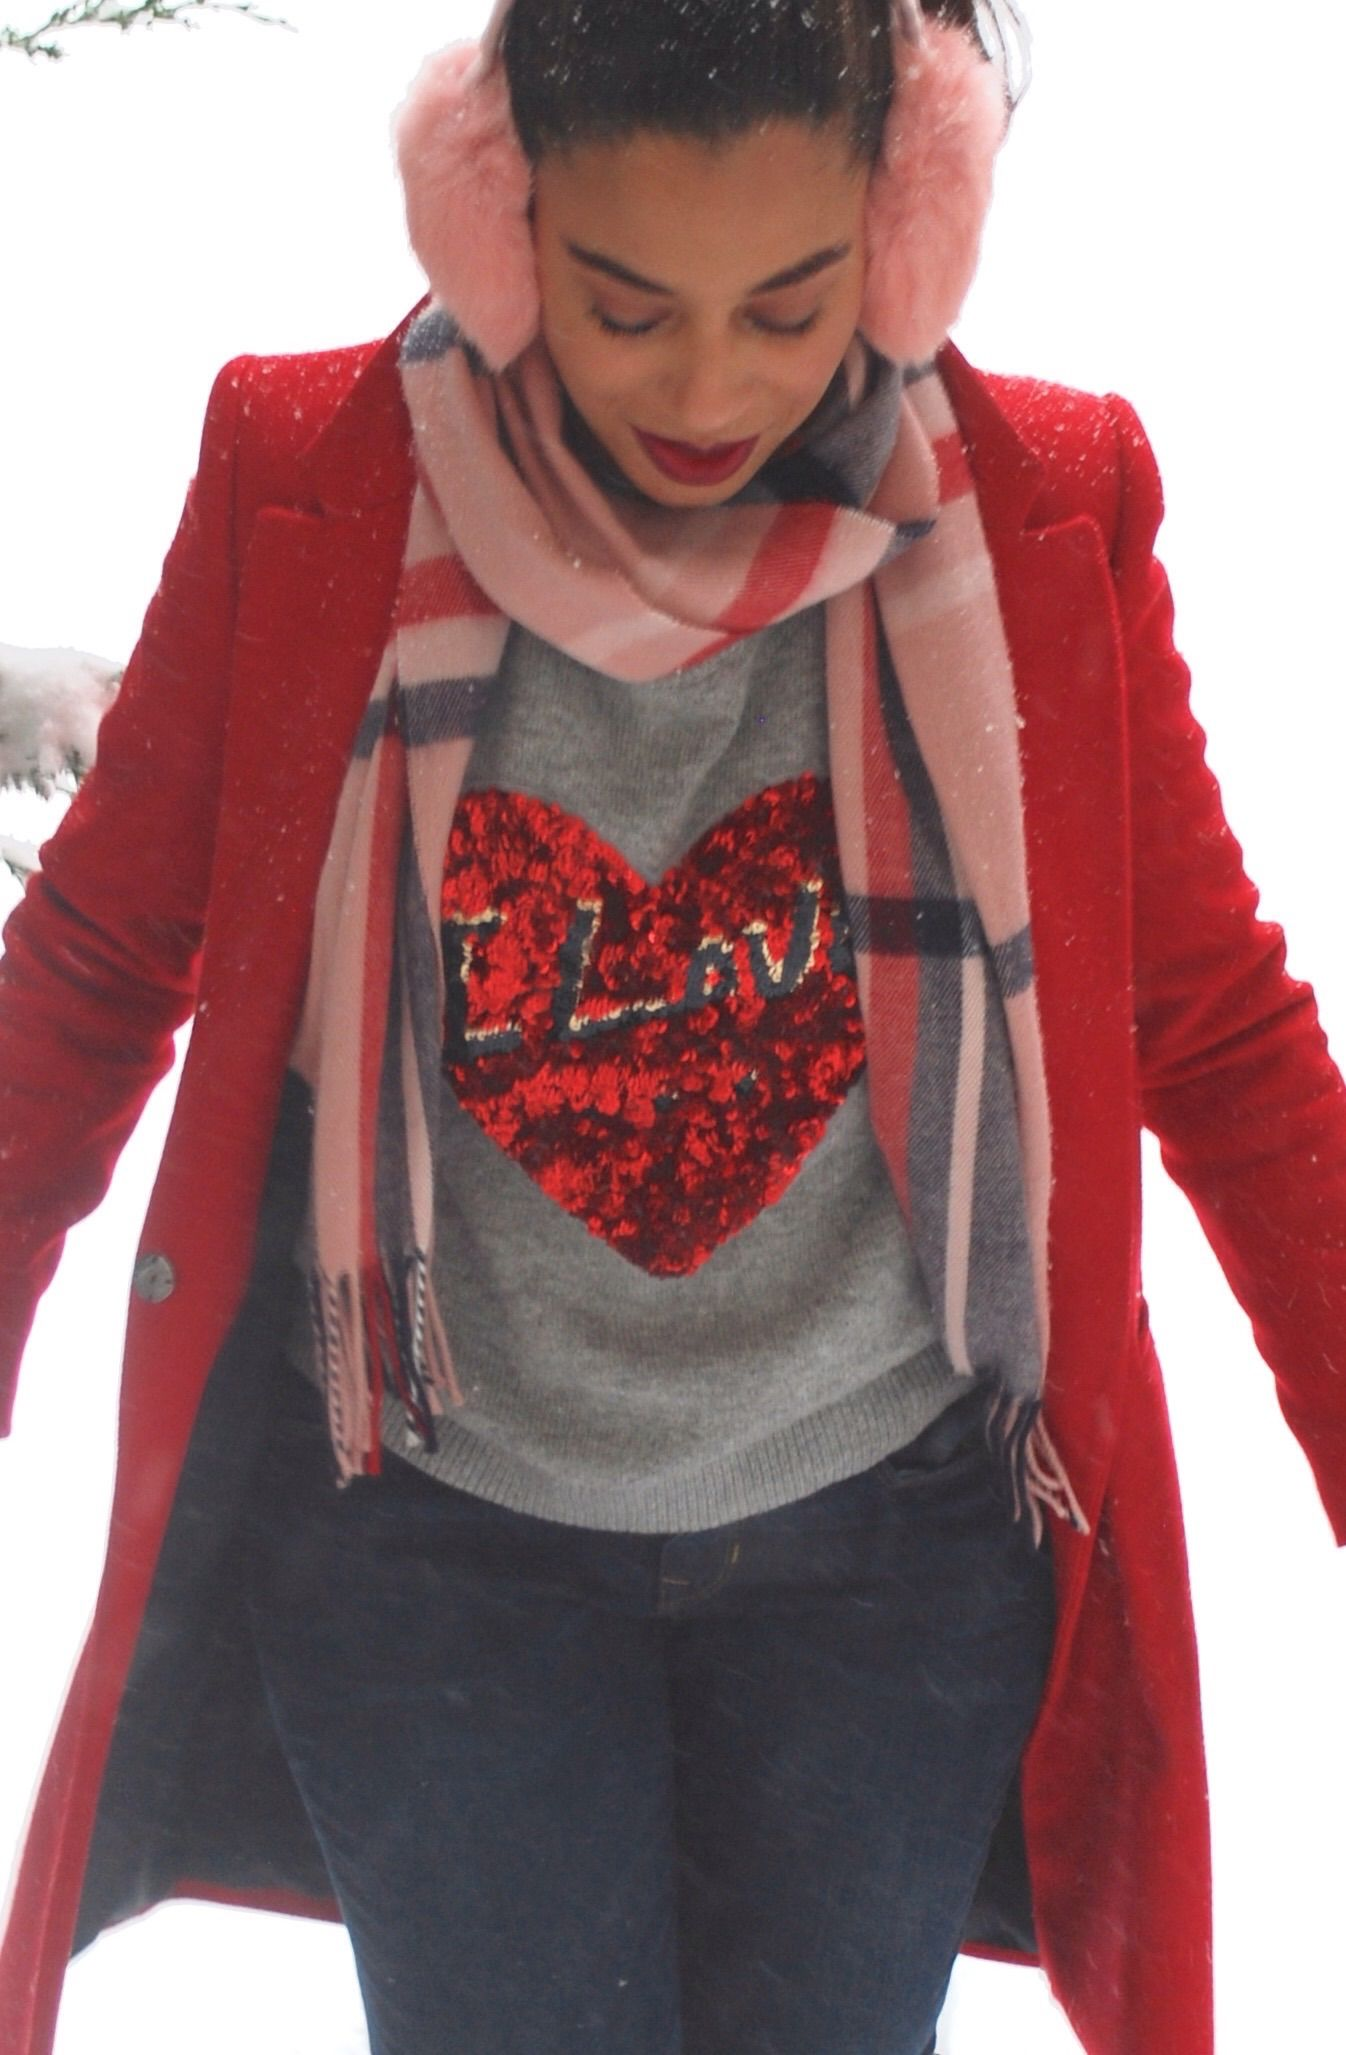 d2915bbdf5f This Season's Gold - Snowstorm // Pink faux fur earmuffs, Pink plaid scarf  - perfect casual #Valentine's Day outfit